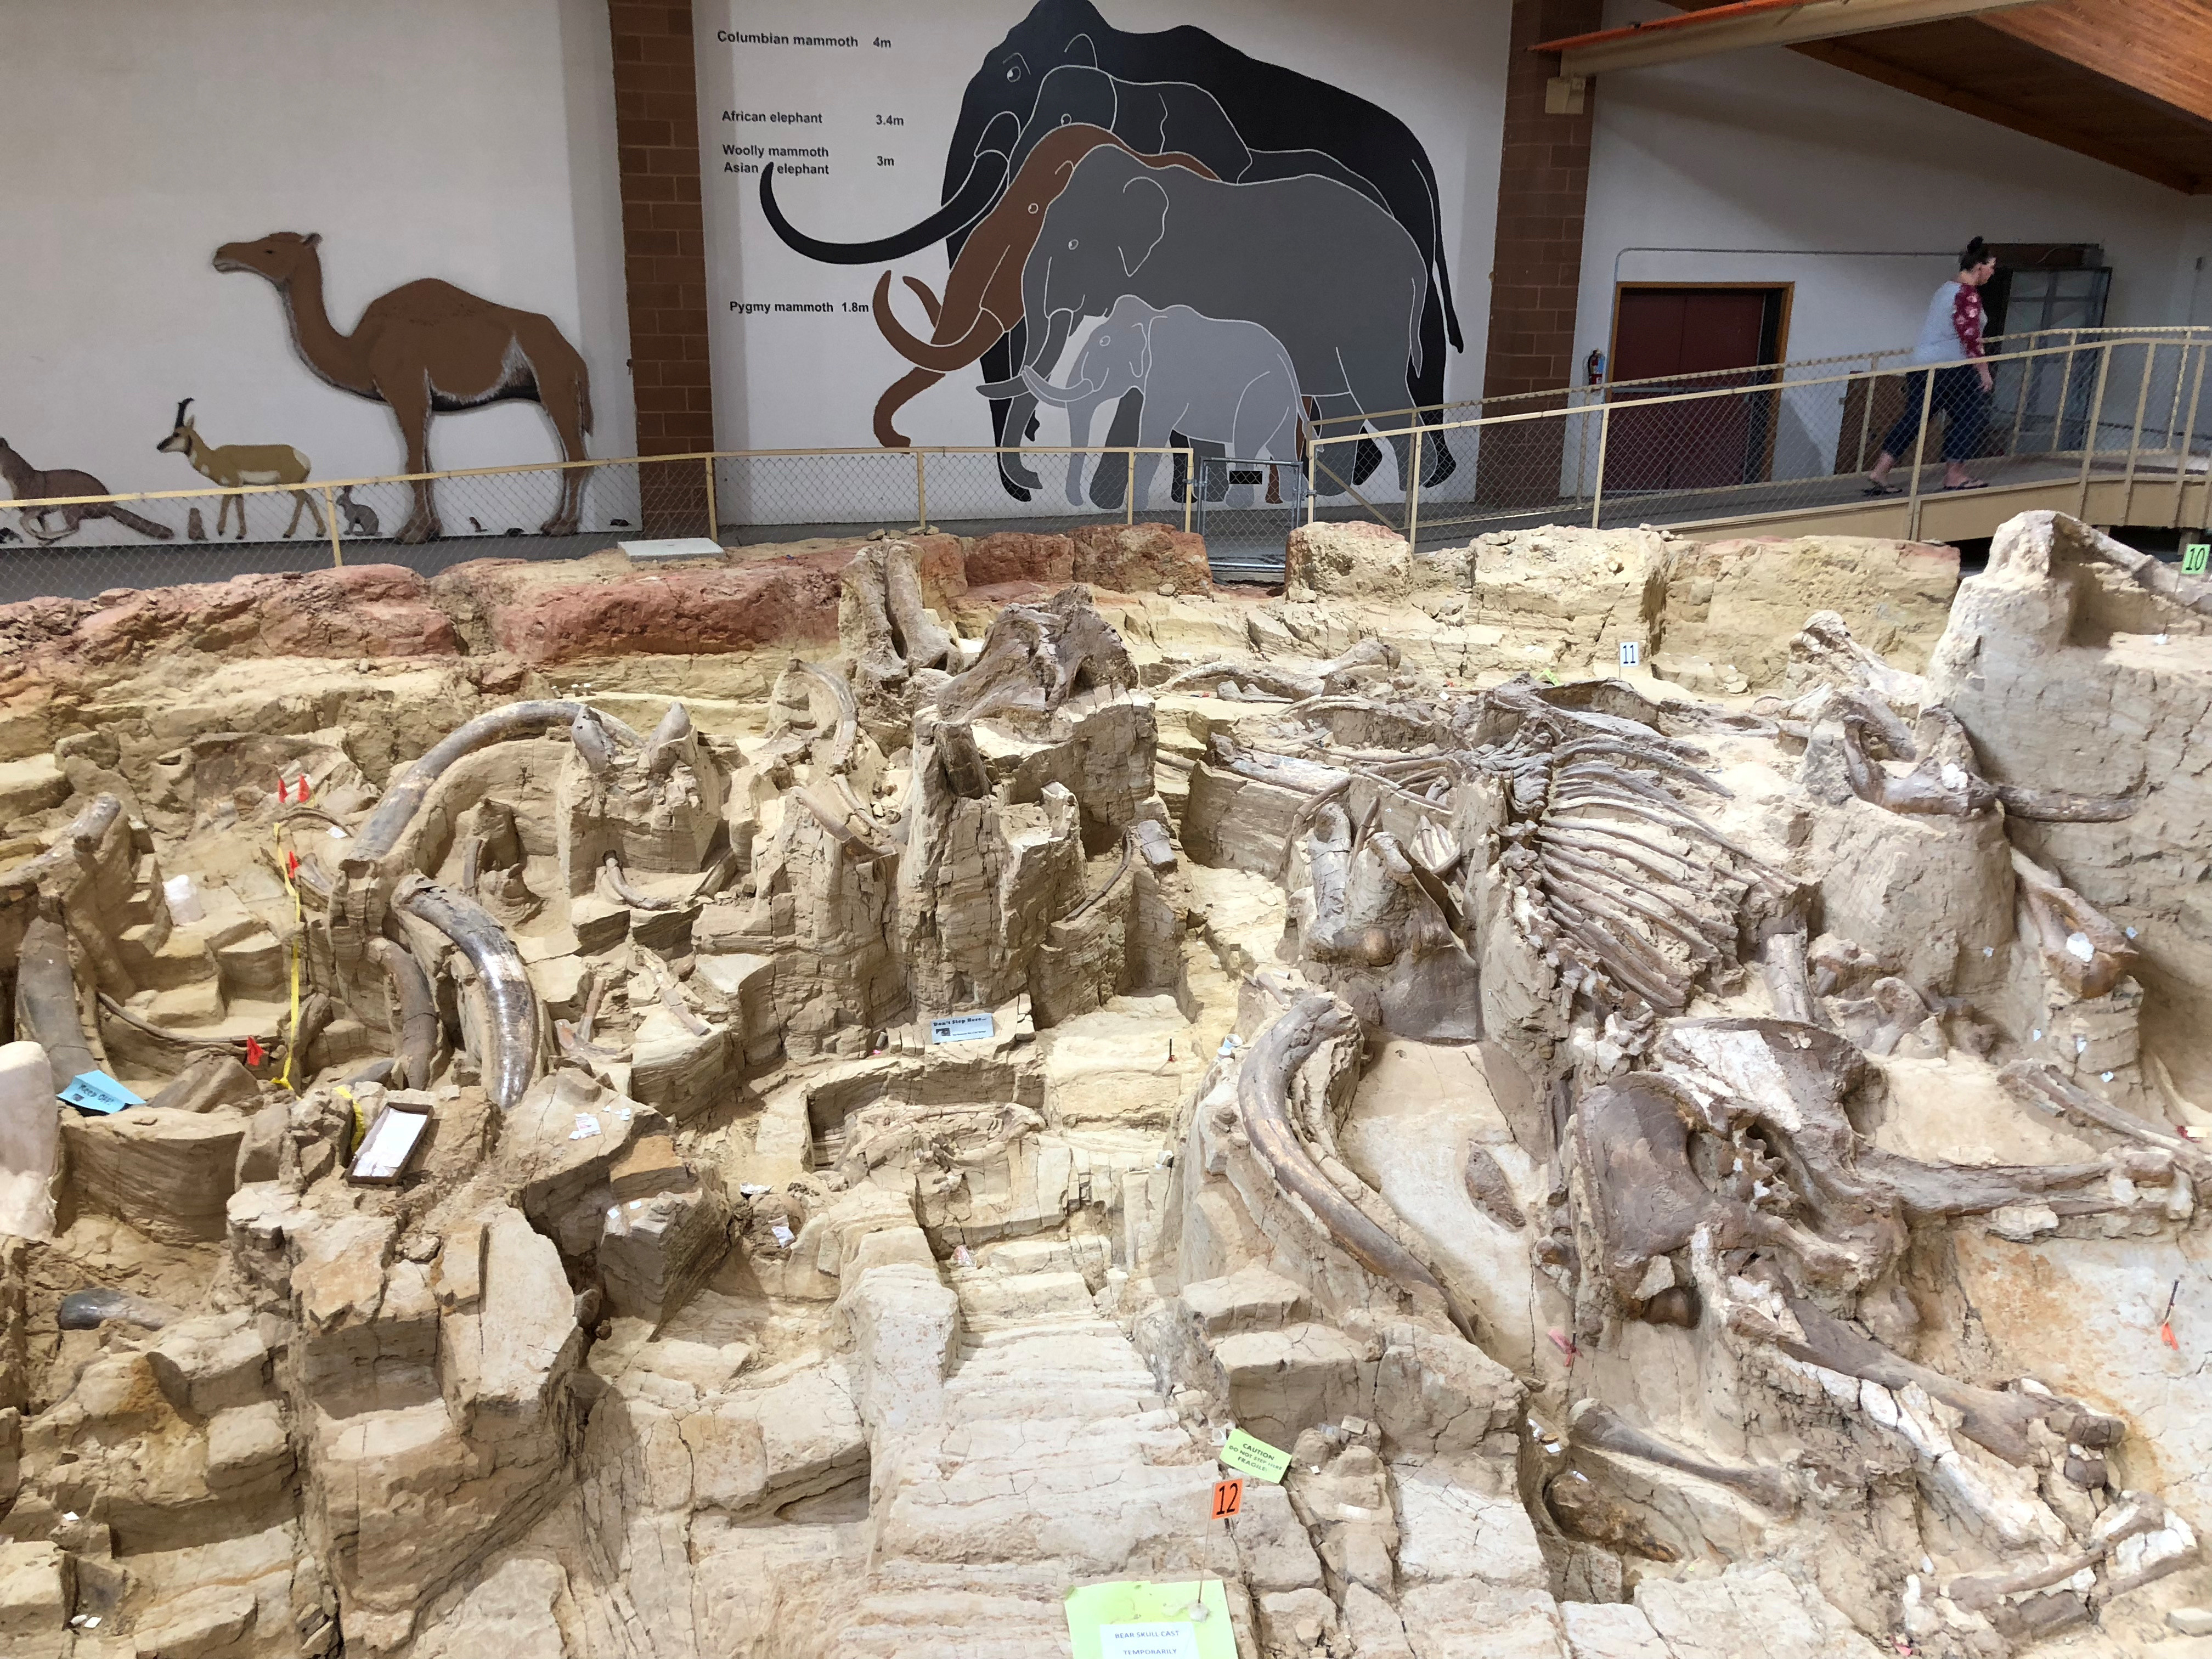 Fossilized bones of mammoths, one of the large mammals that roamed North America during the last Ice Age, are displayed at the Mammoth Site where numerous mammoth fossils have been excavated in Hot Springs, South Dakota, U.S. August 31, 2018. Picture taken August 31, 2018.  REUTERS/Will Dunham - RC2TLI9RYMXZ